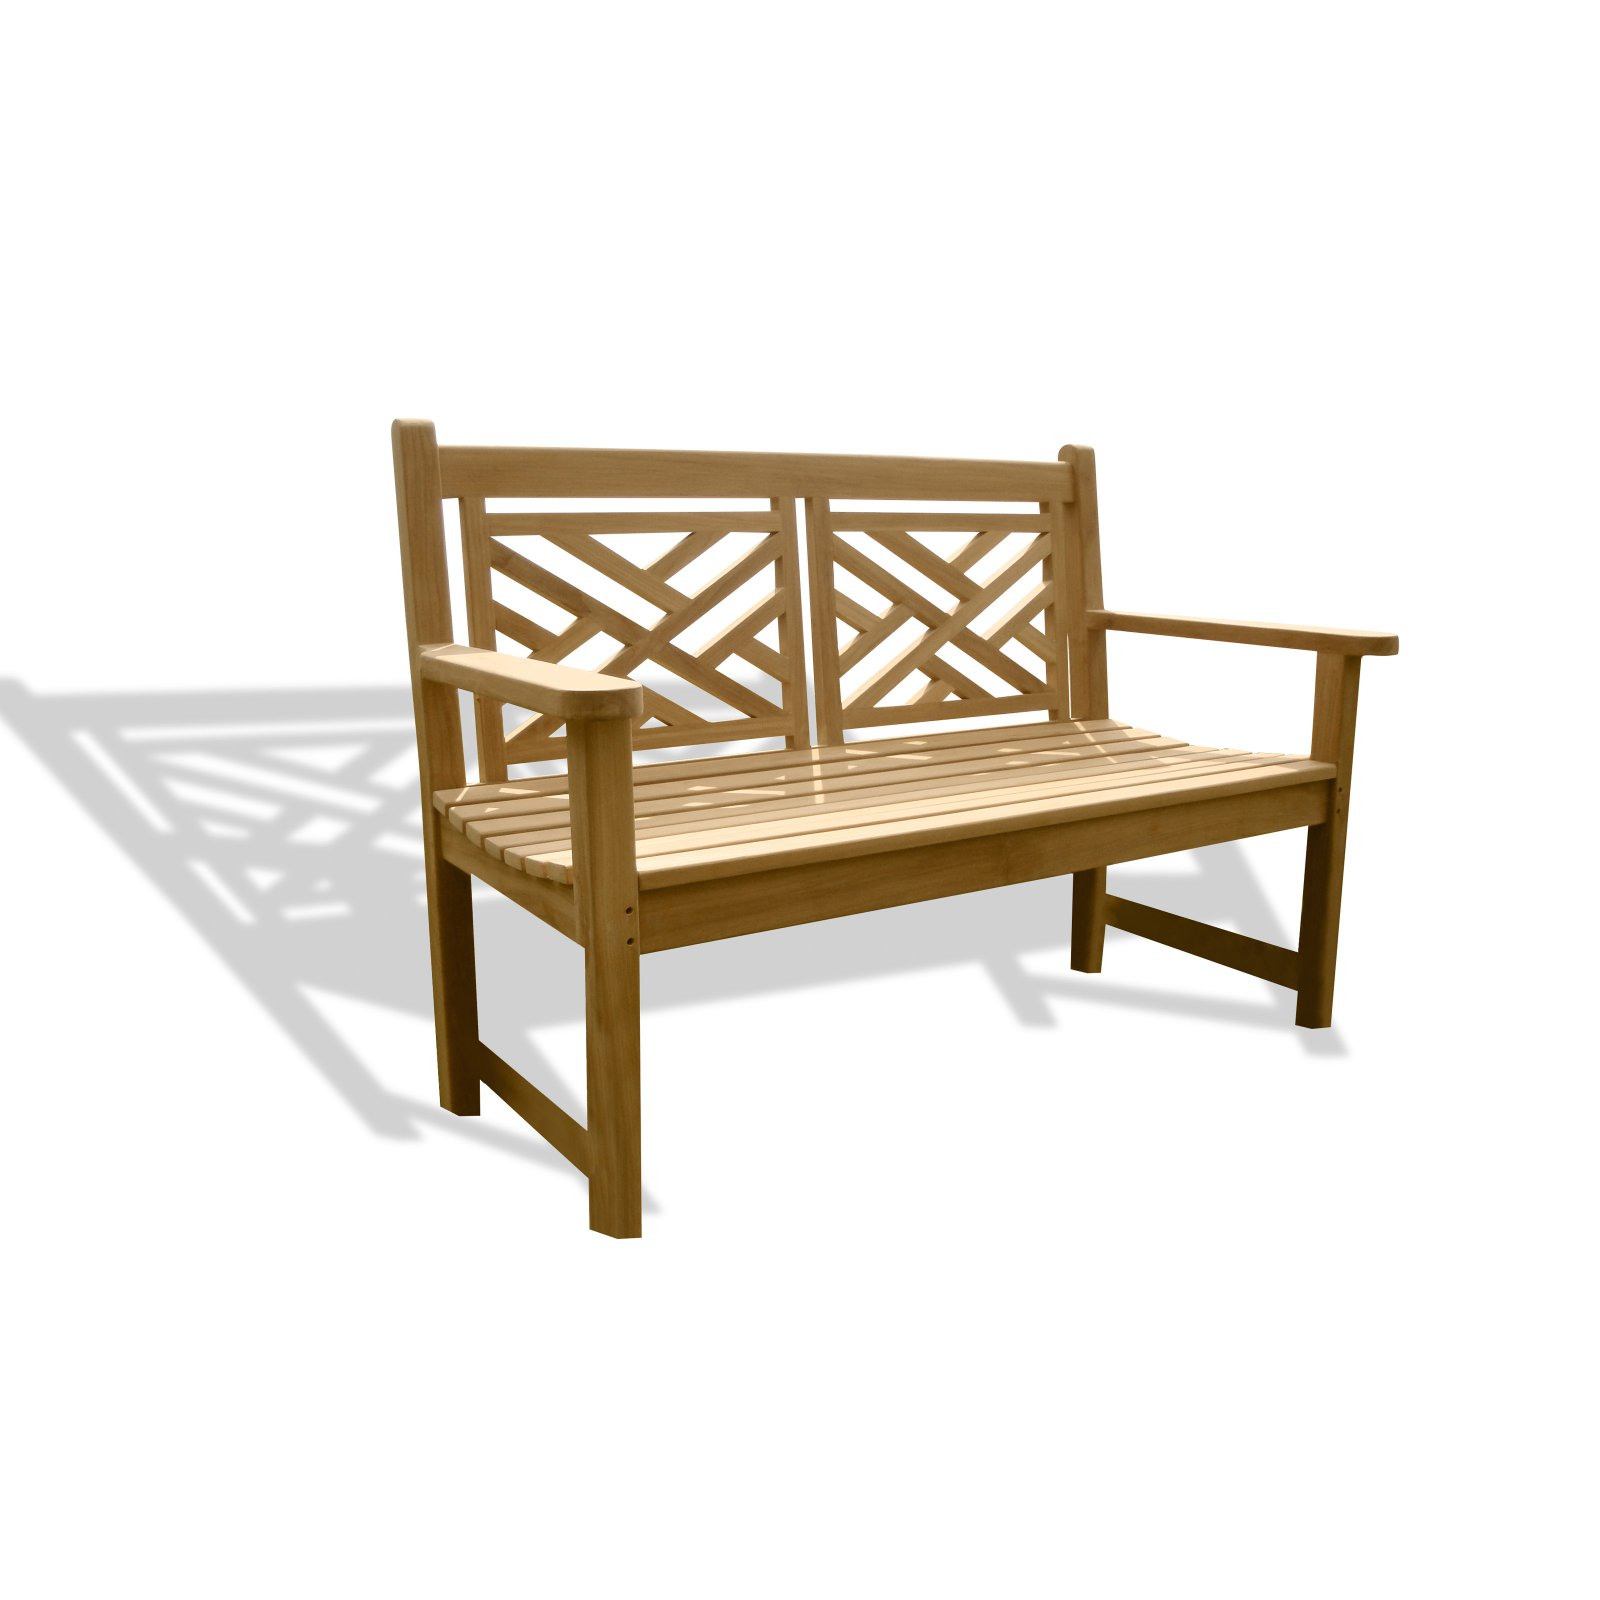 Windsor Teak Furniture Chippendale Classic Teak Outdoor Bench with Contoured Seat by Windsor Teak Furniture